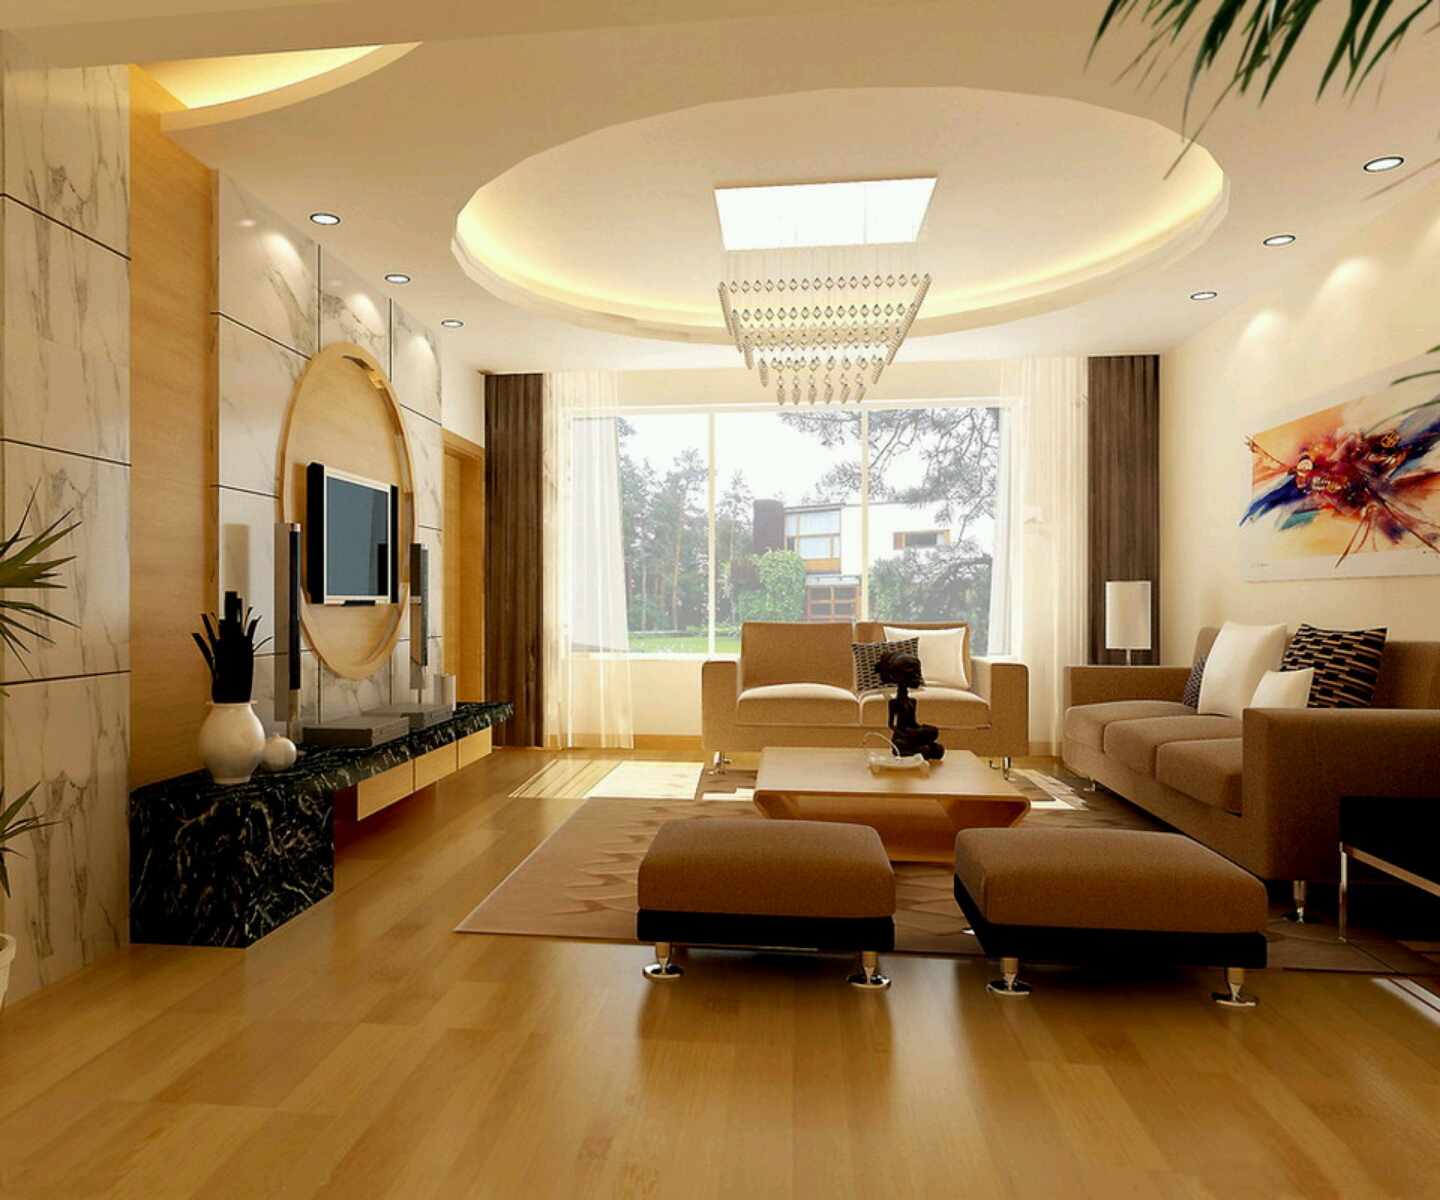 New home designs latest modern interior decoration for Modern living room decor